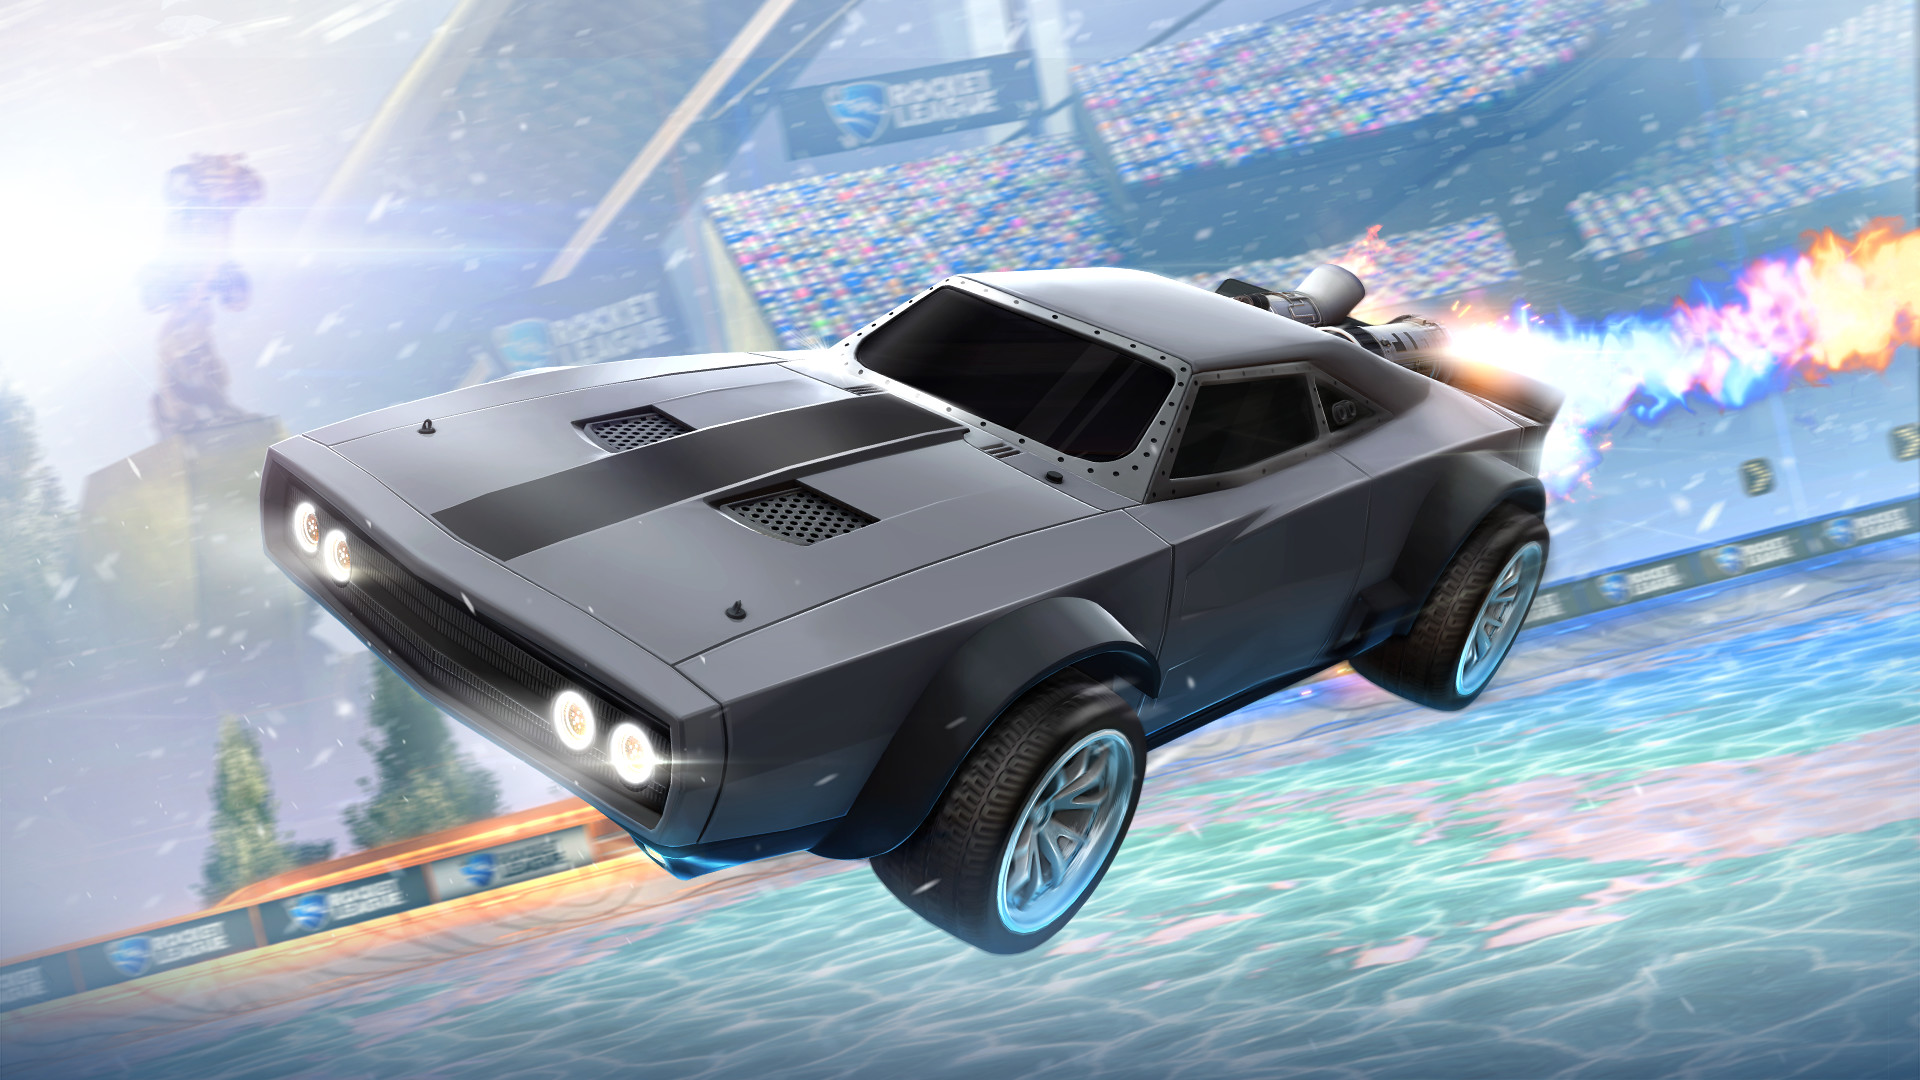 Rocket League The Fate of the Furious Features